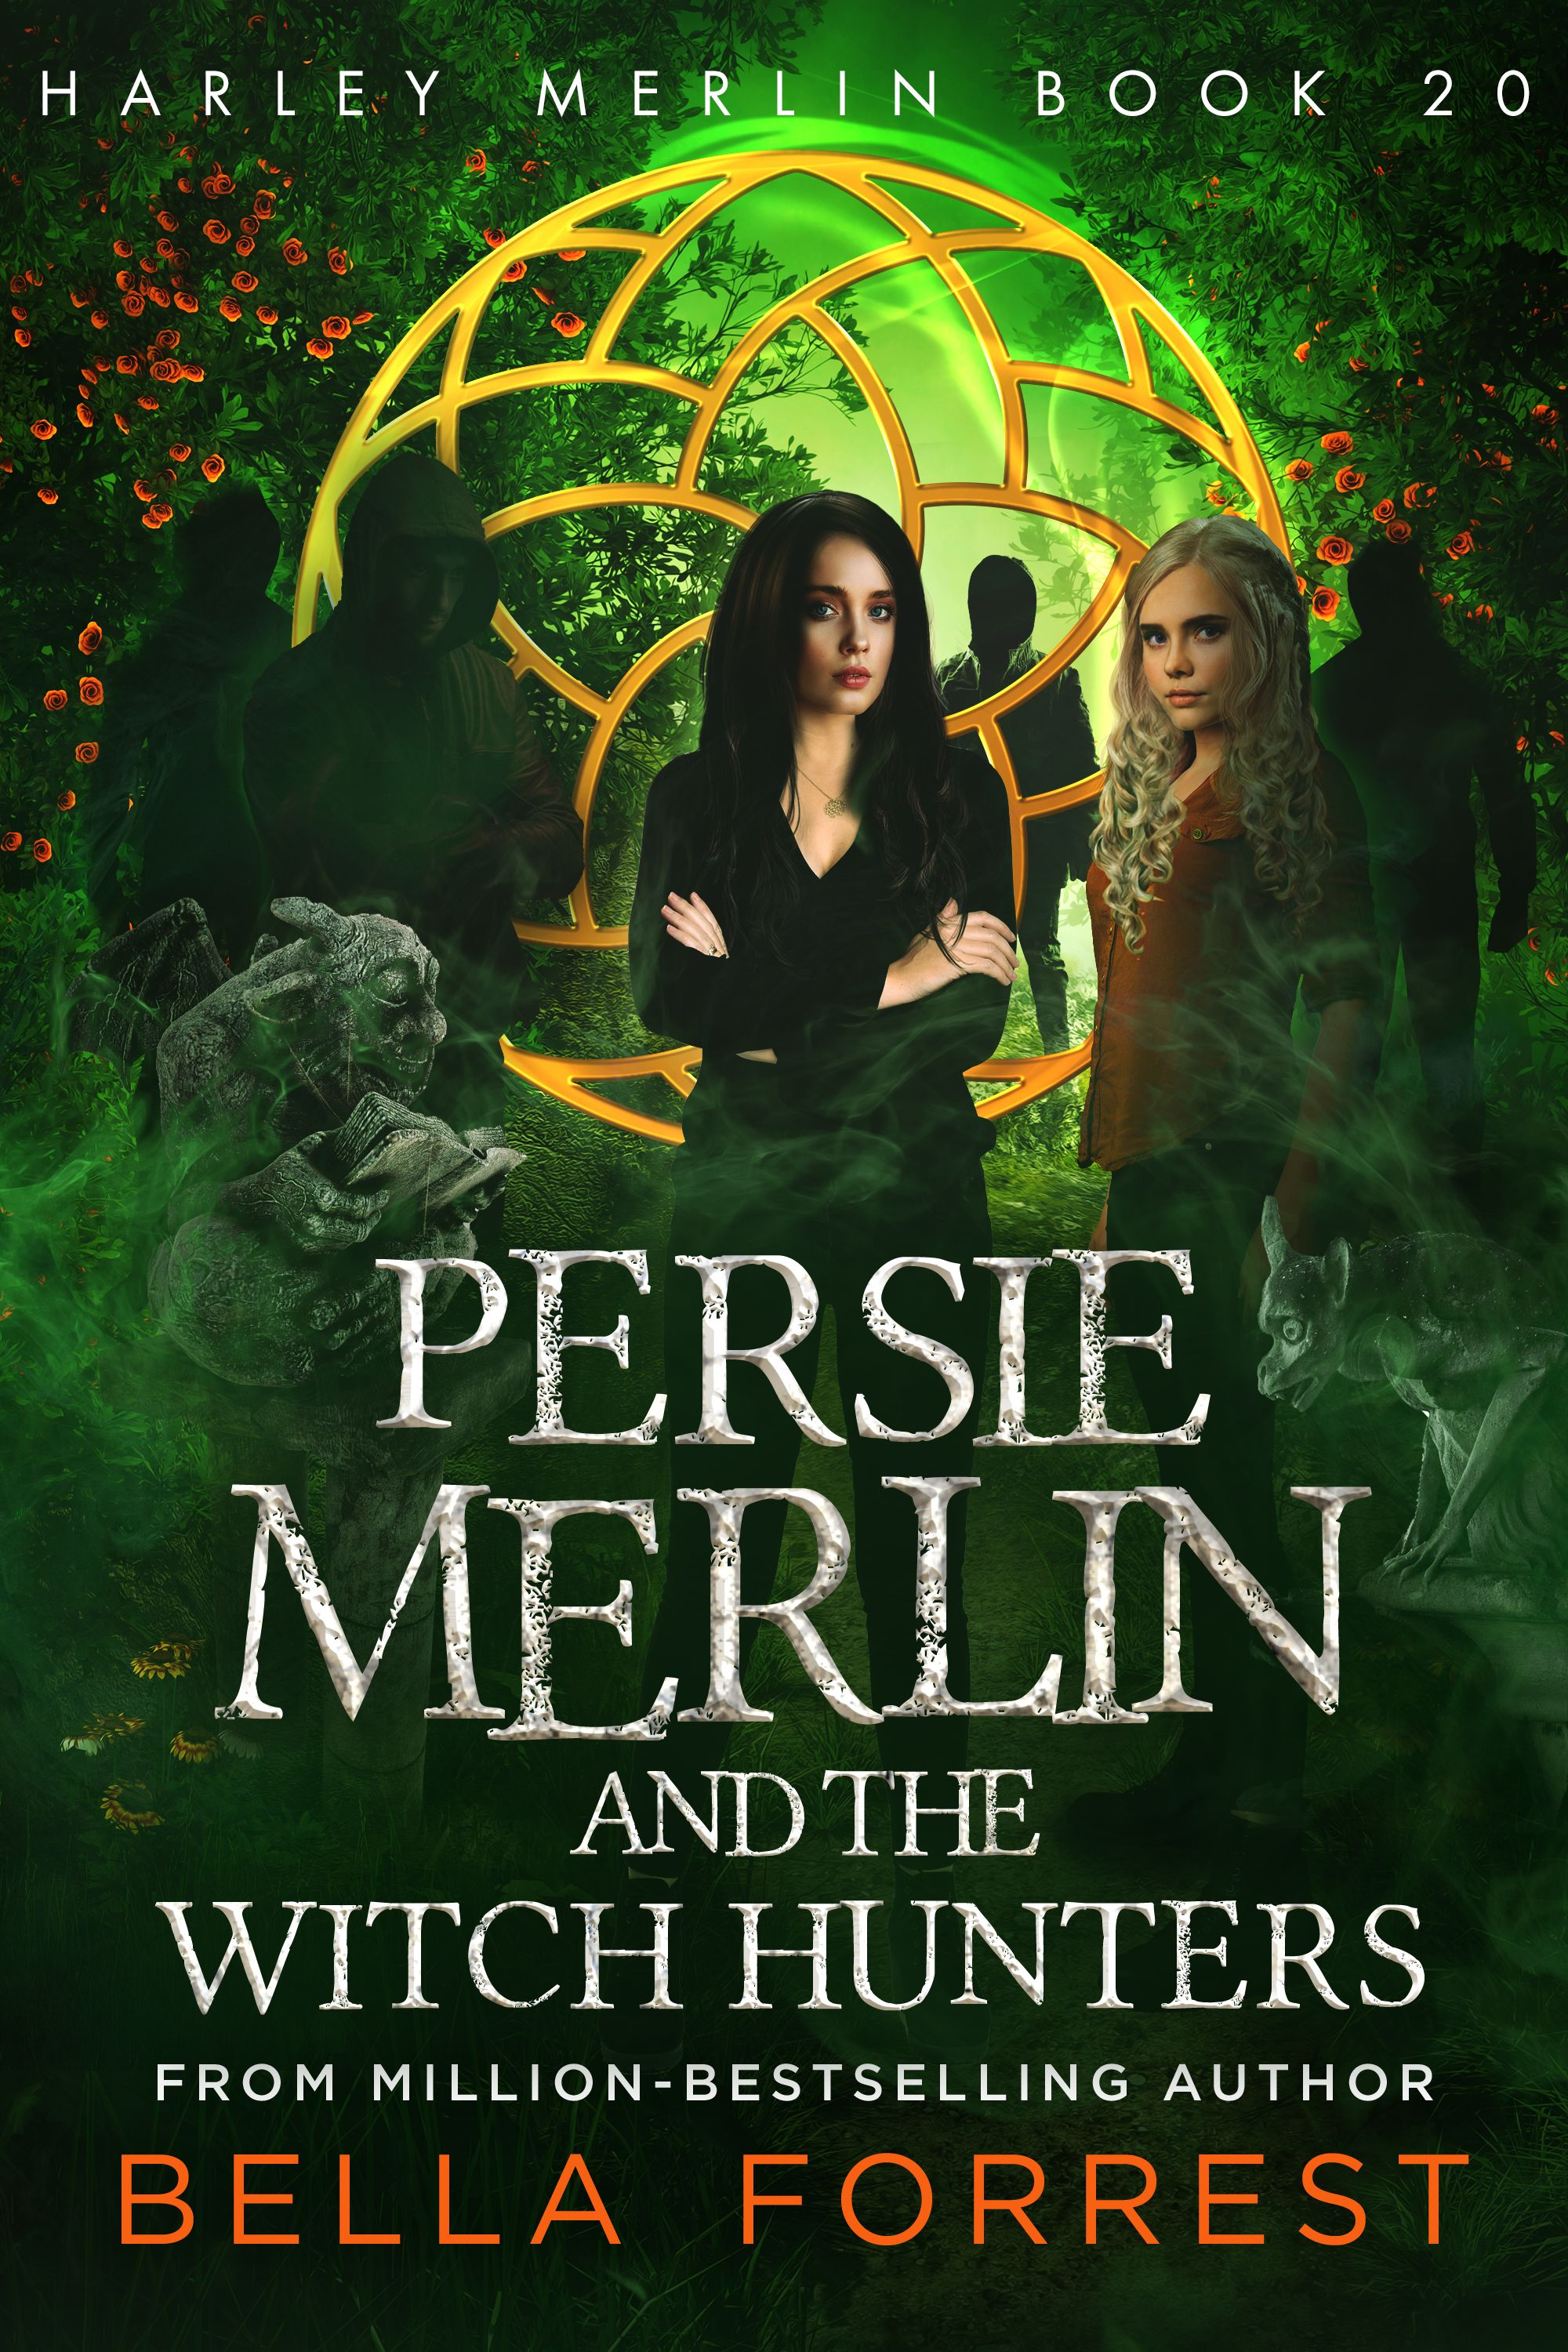 Harley Merlin 20 Persie Merlin And The Witch Hunters In 2020 Urban Fantasy Books Supernatural Books Fantasy Books Harley merlin and the secret coven by bella forrest. pinterest